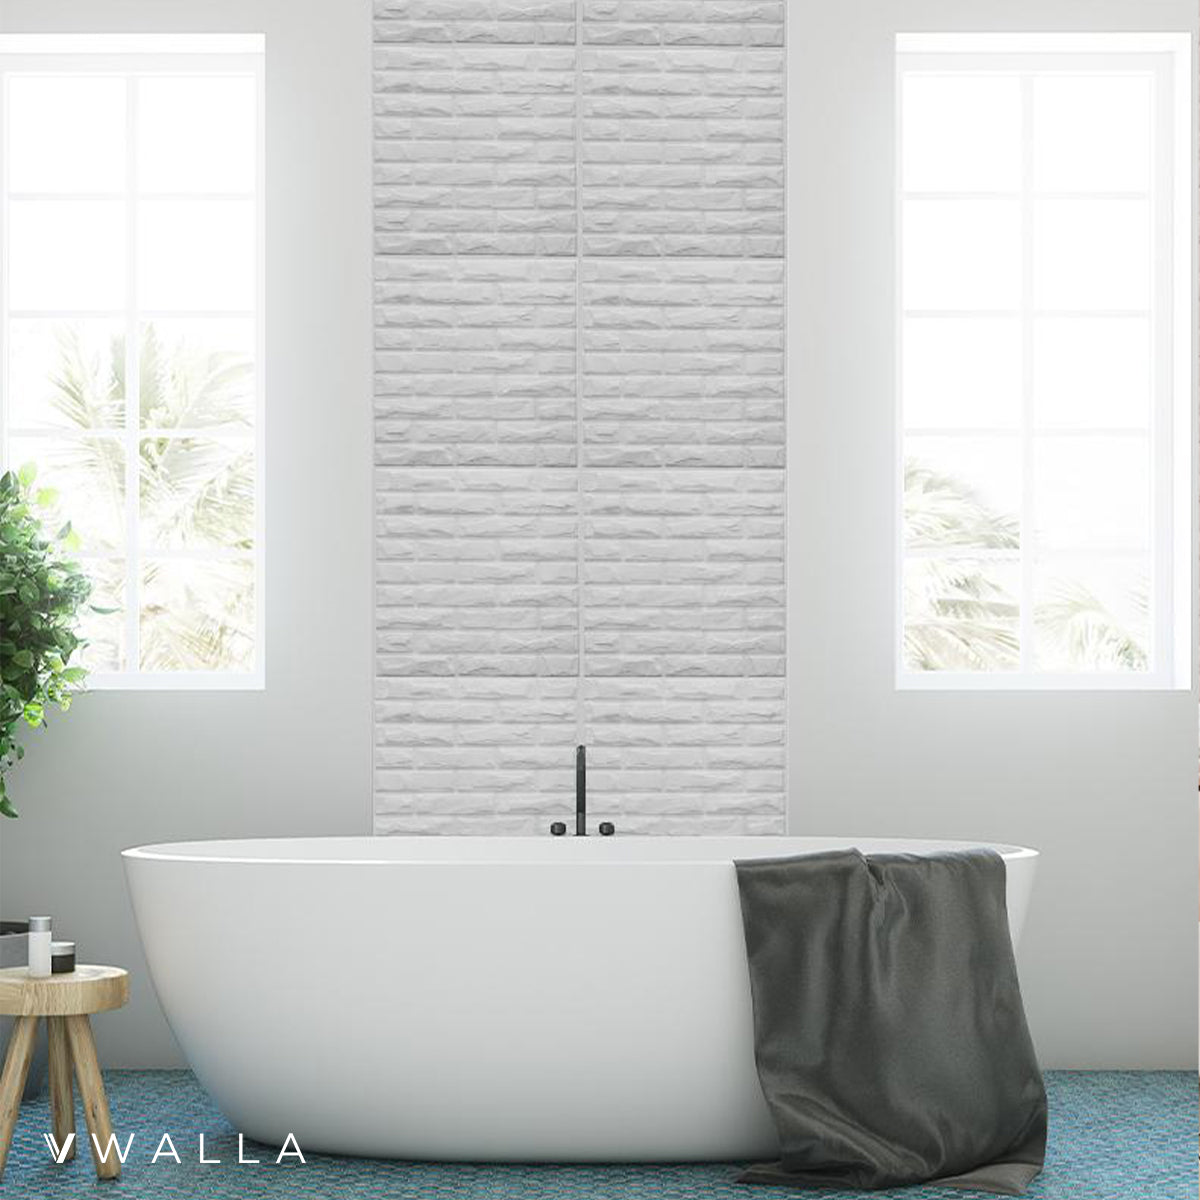 3D Wall Panel - Bricks